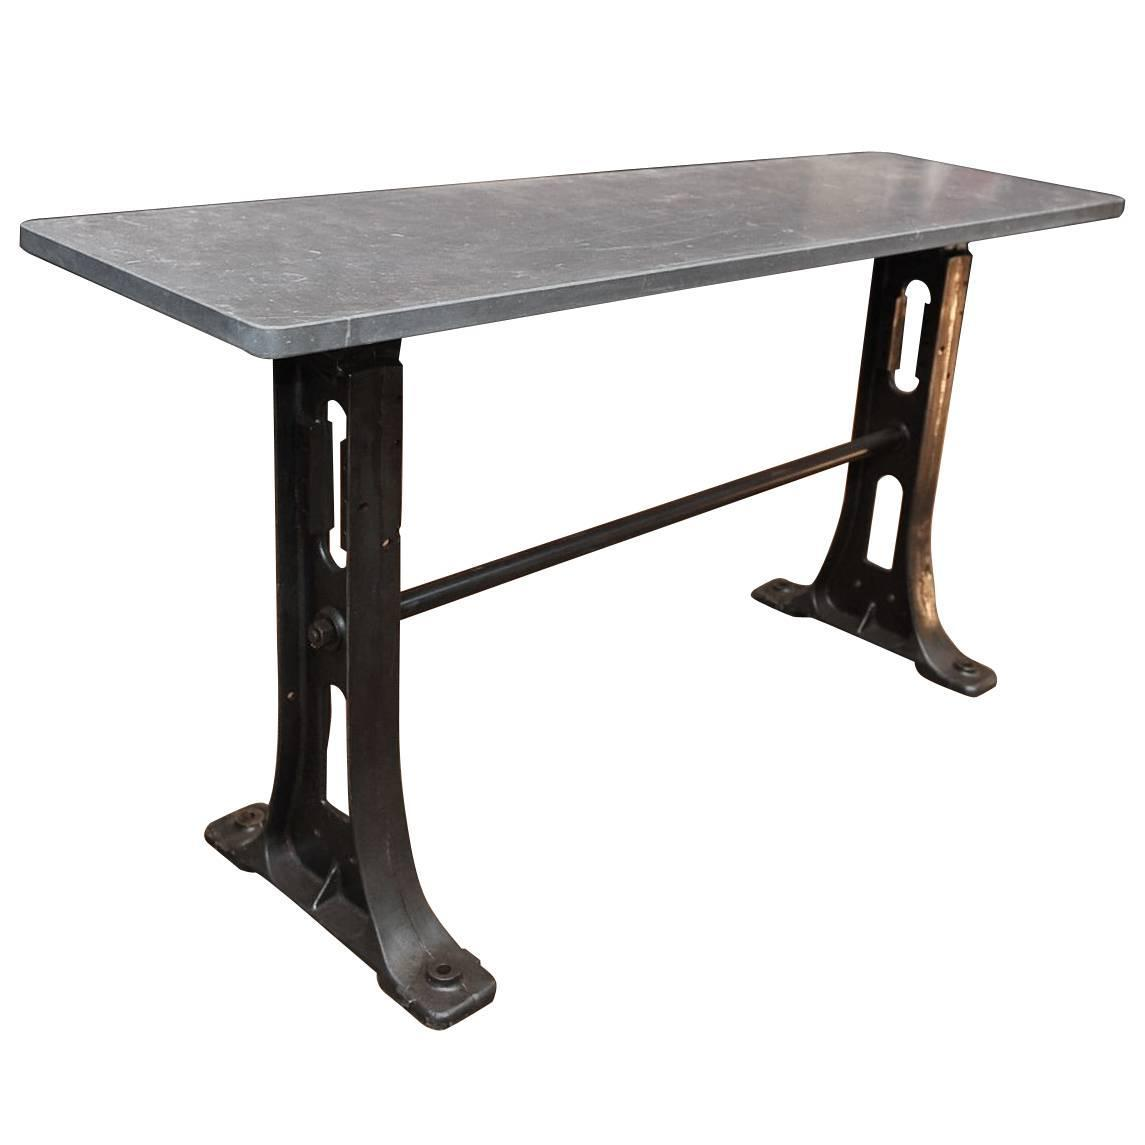 1900s cast iron industrial console table bluestone top at 1stdibs